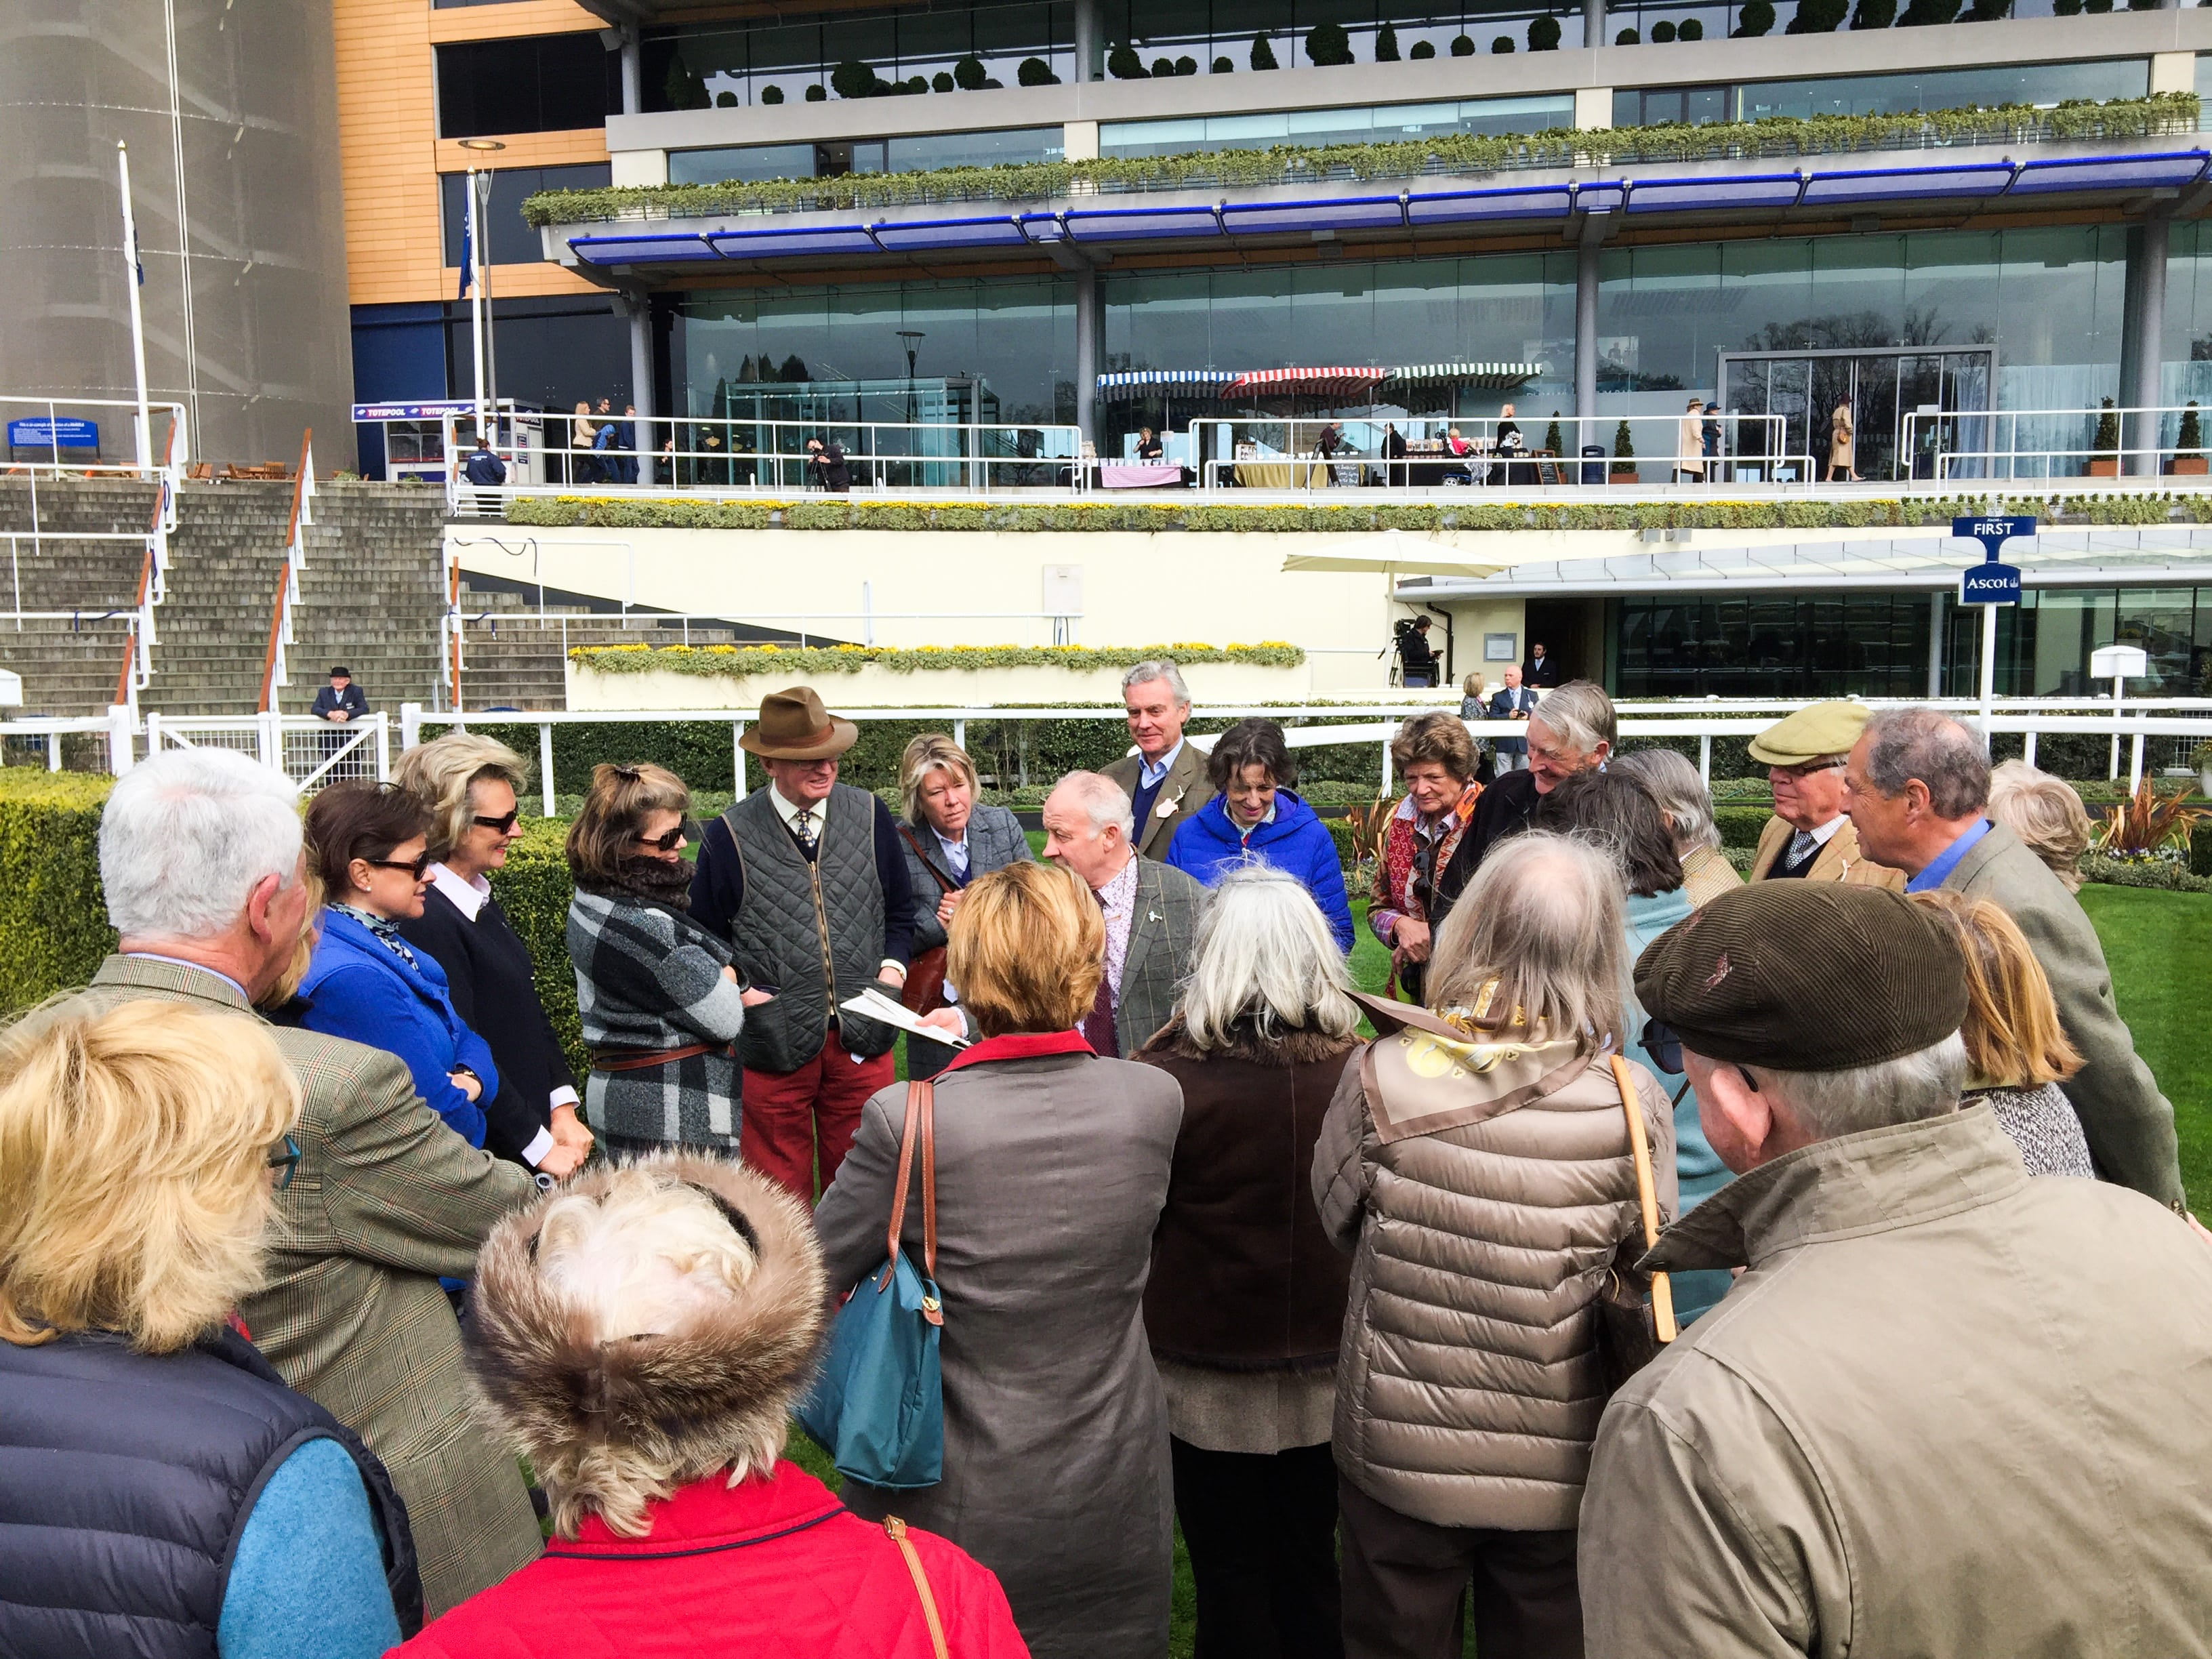 Walk of the course at Ascot in 2016